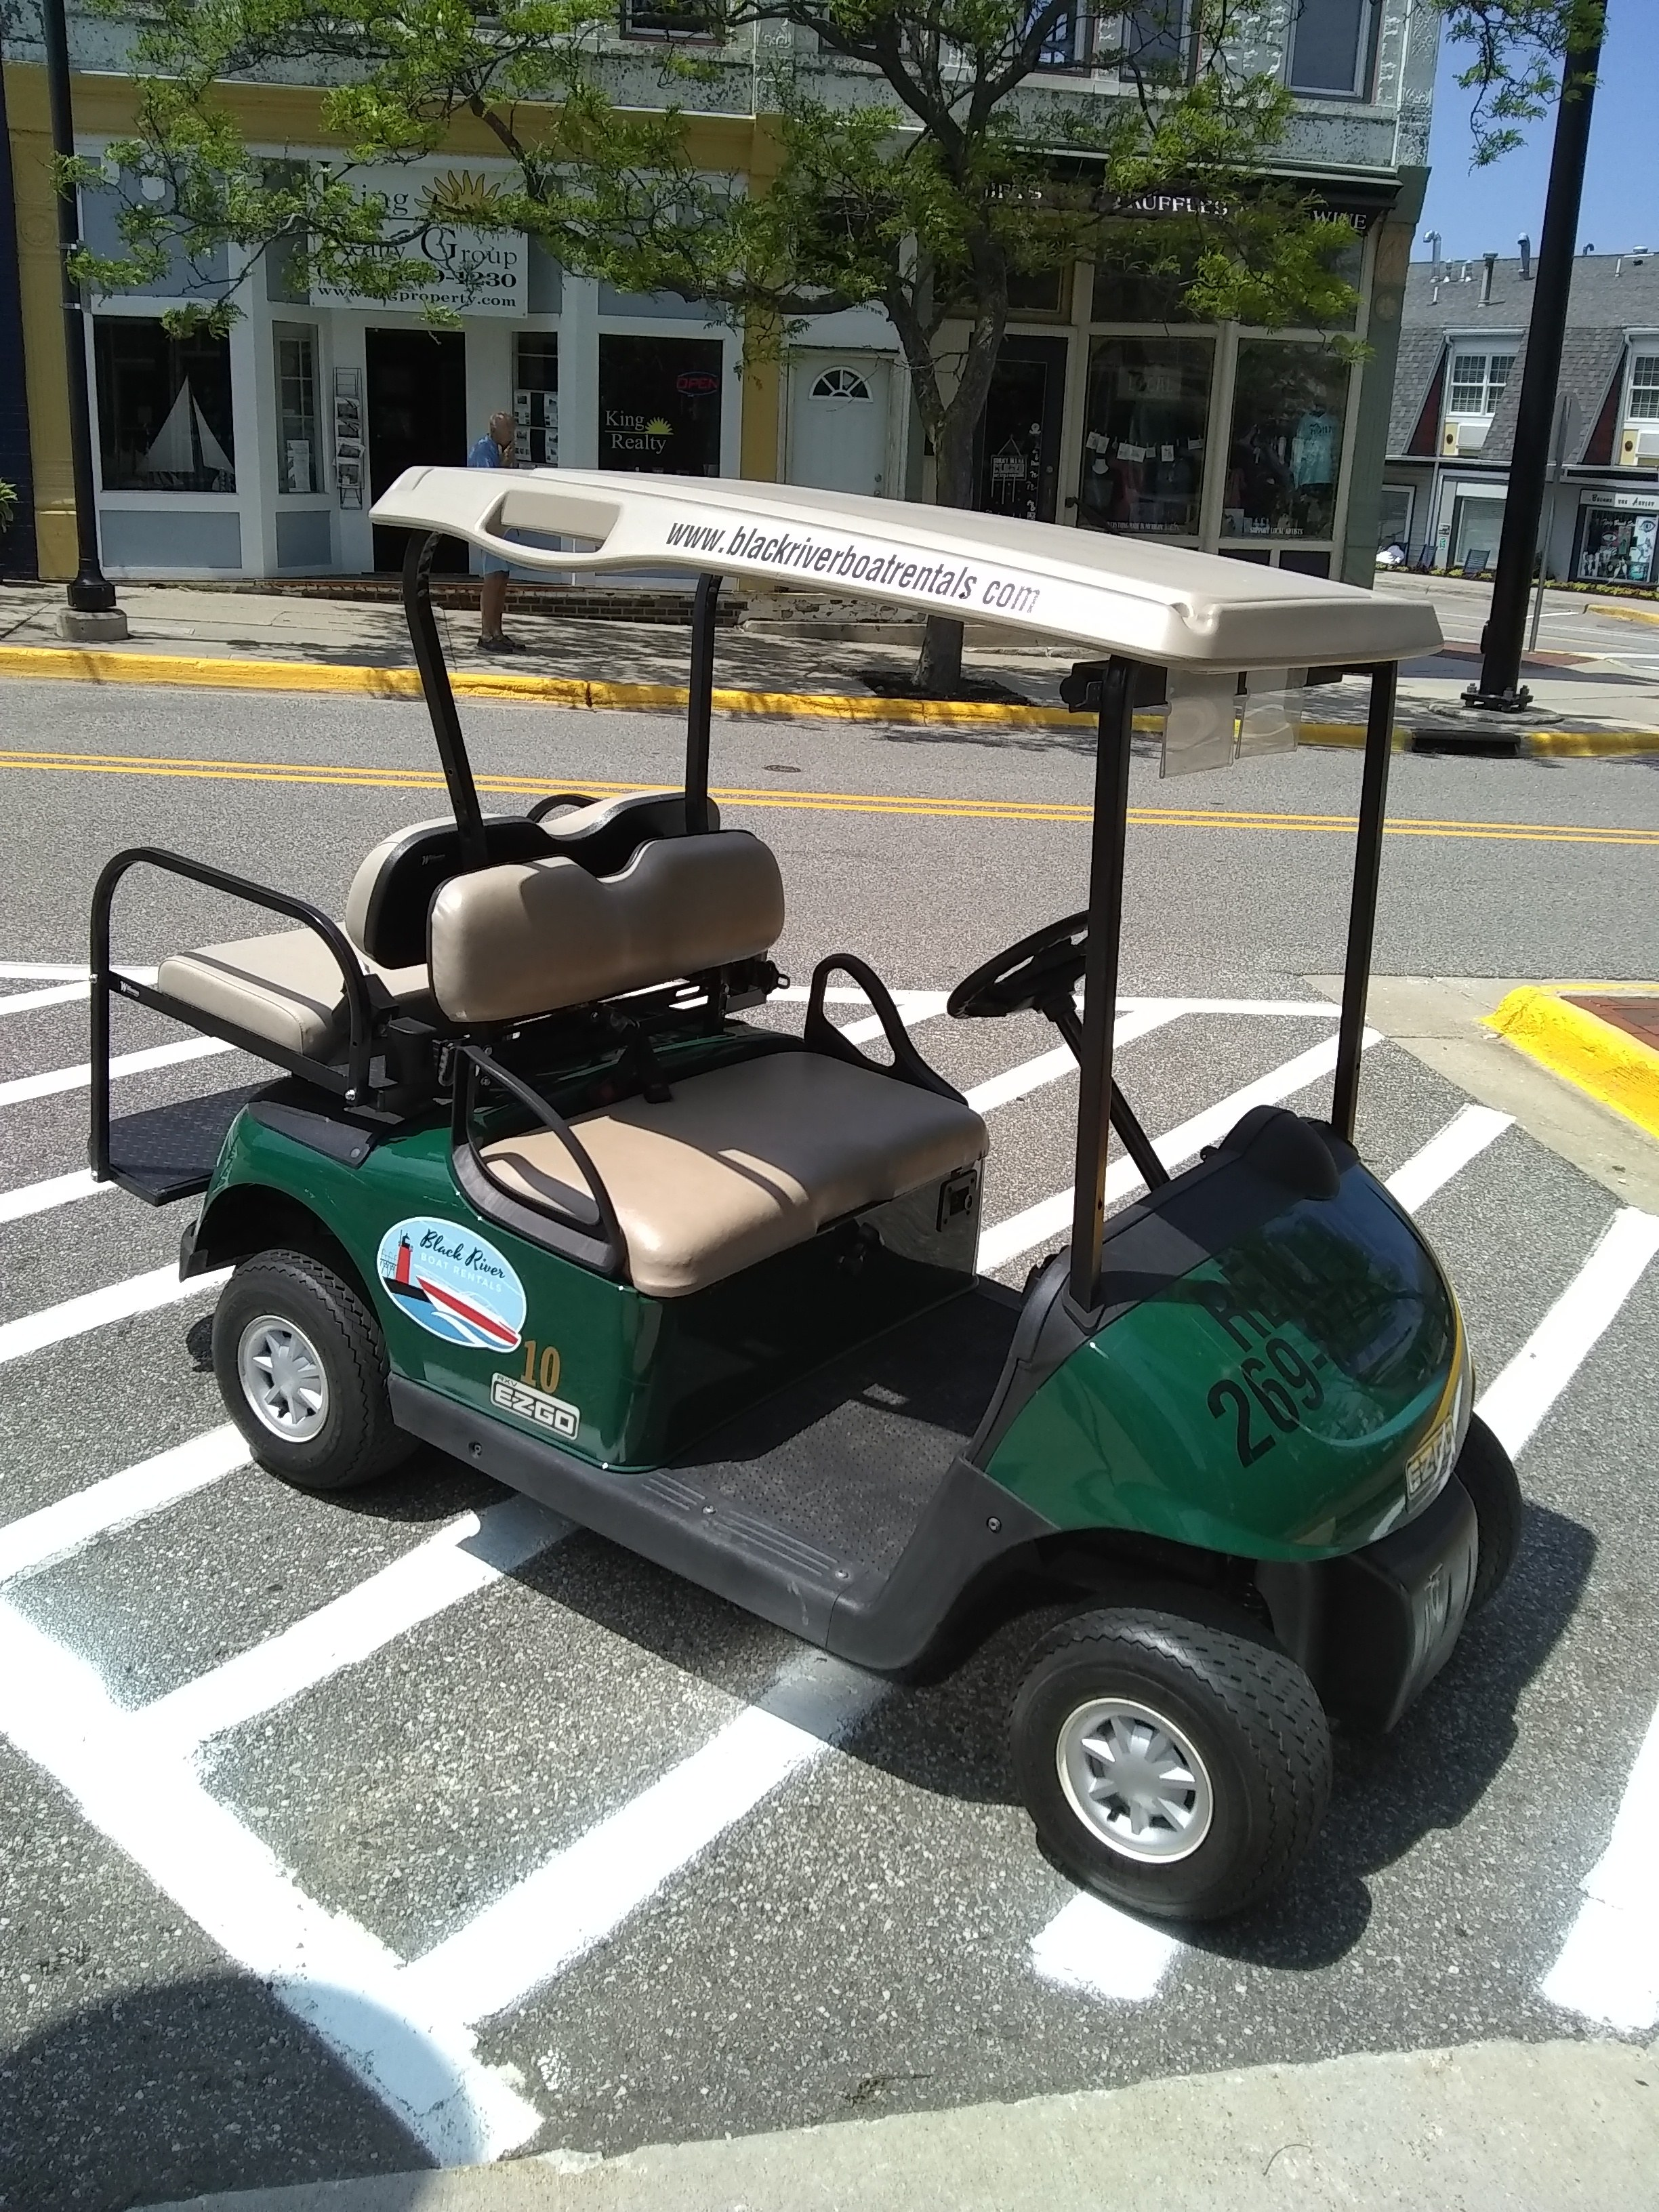 Picture of Black River Boat Rentals golf cart on the street - What to do in South Haven